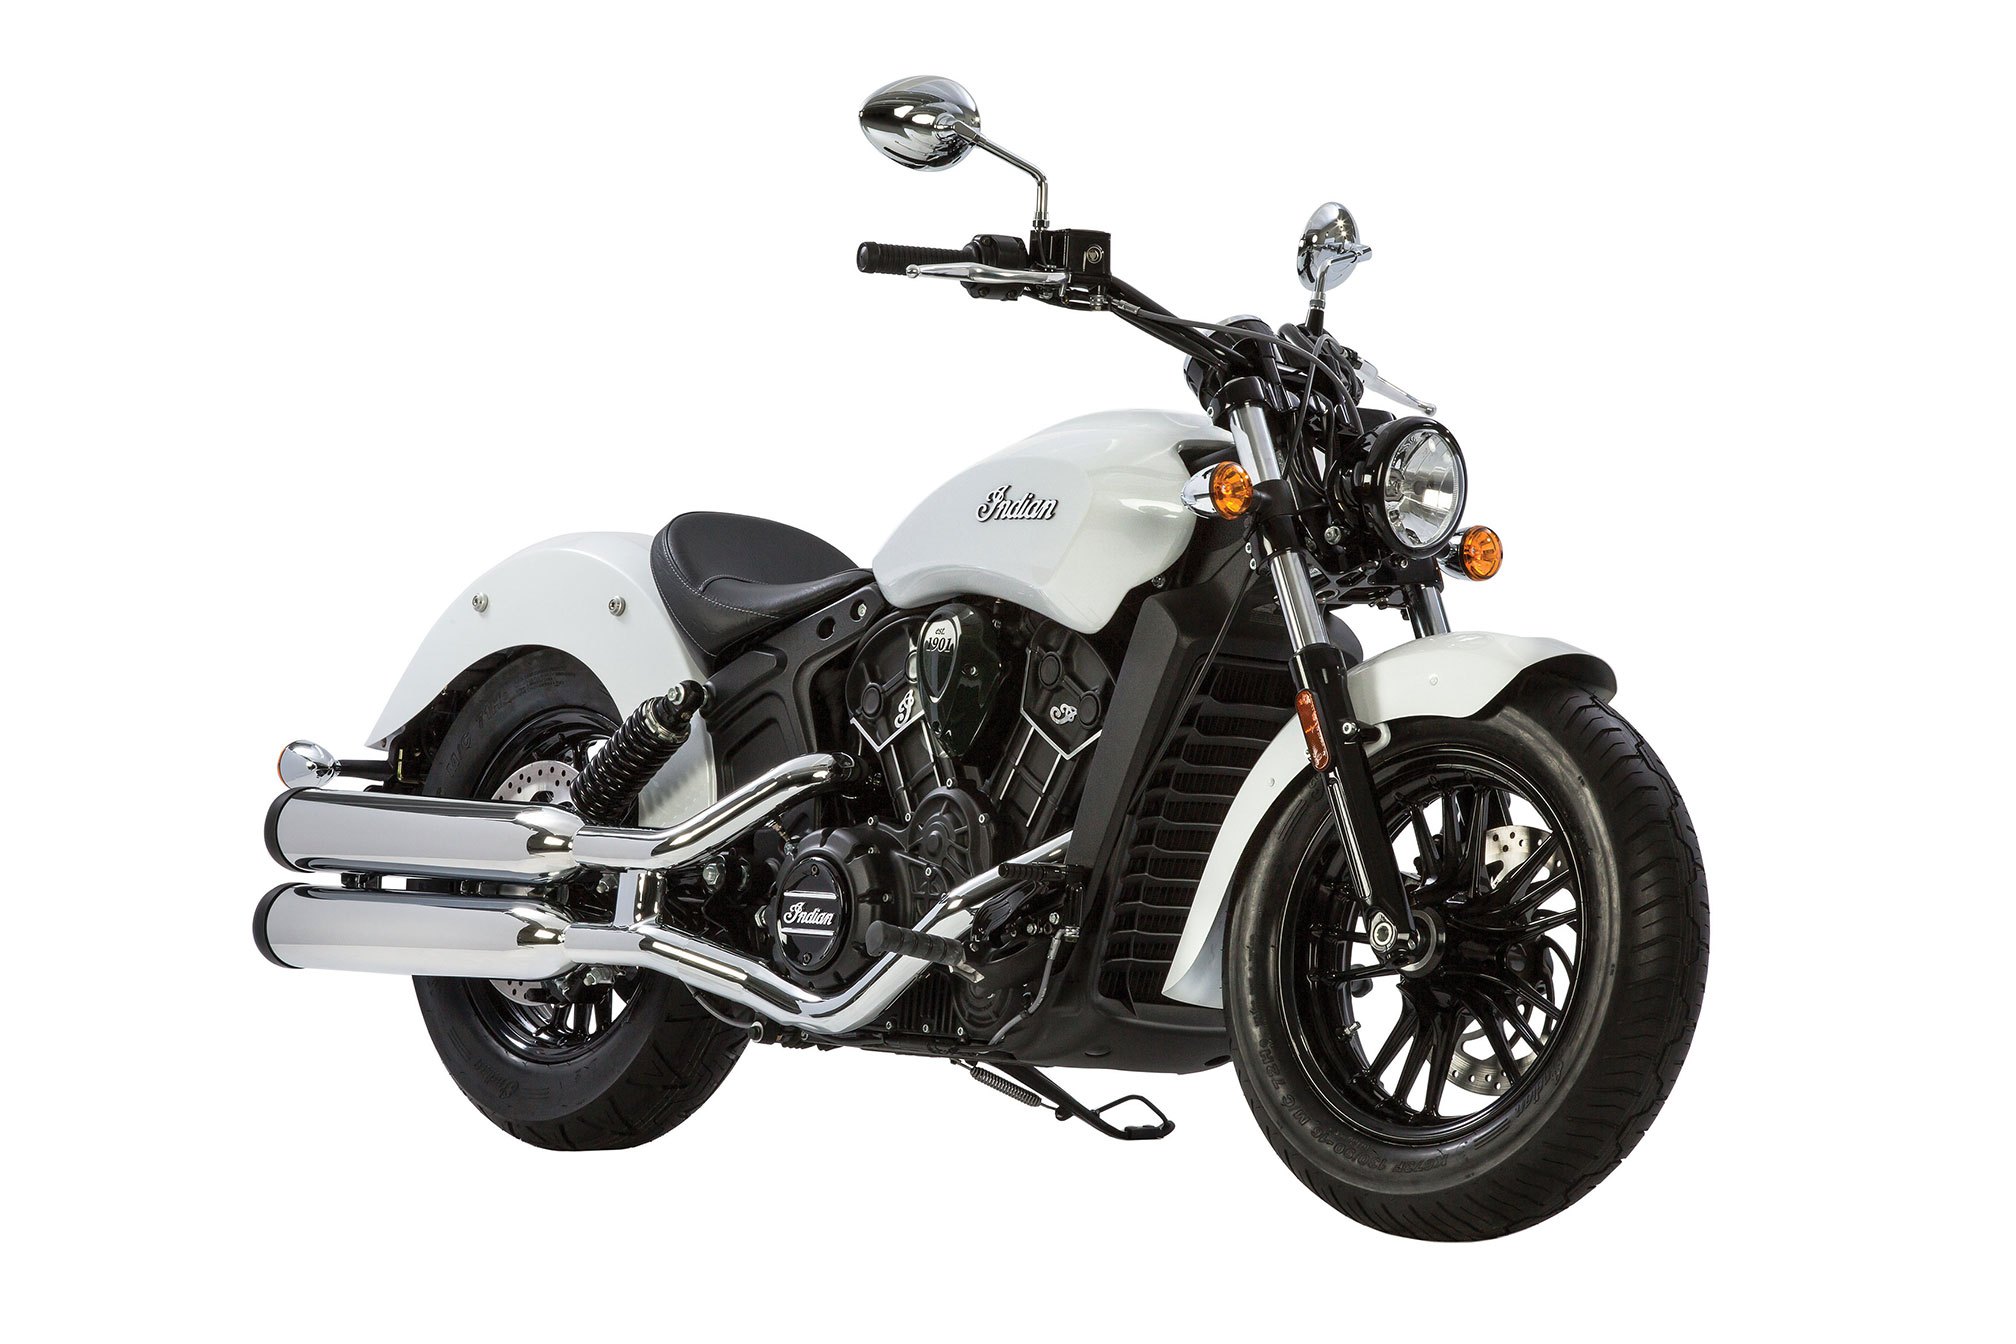 2016 Indian Scout Sixty Review